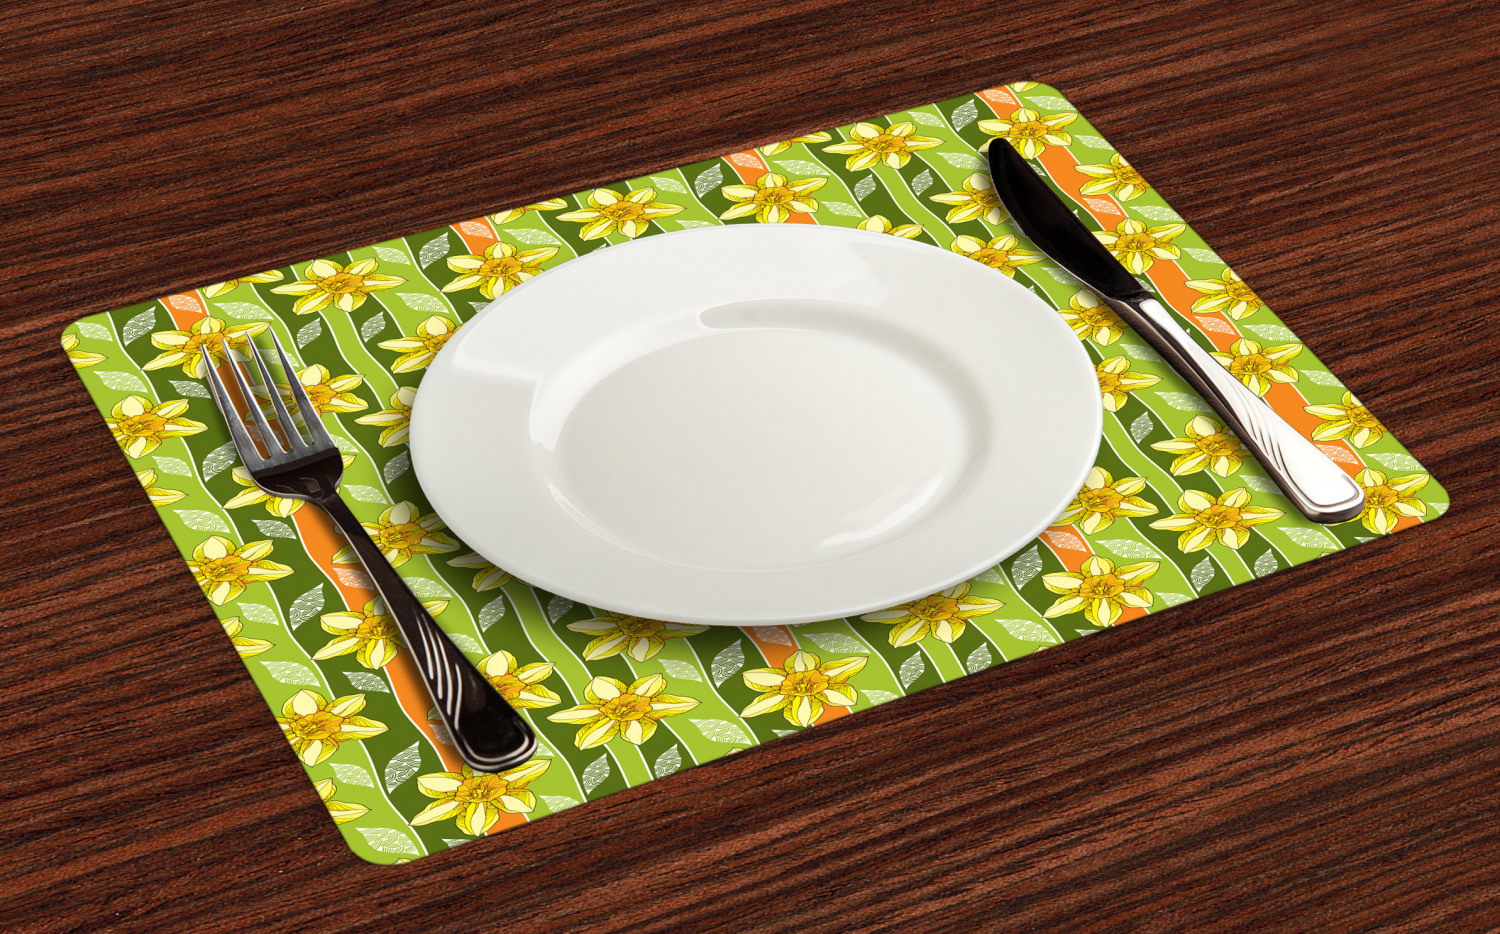 Ambesonne-Flower-Pattern-Placemat-Set-of-4-Fabric-Place-Mats-for-Table-Decor thumbnail 149